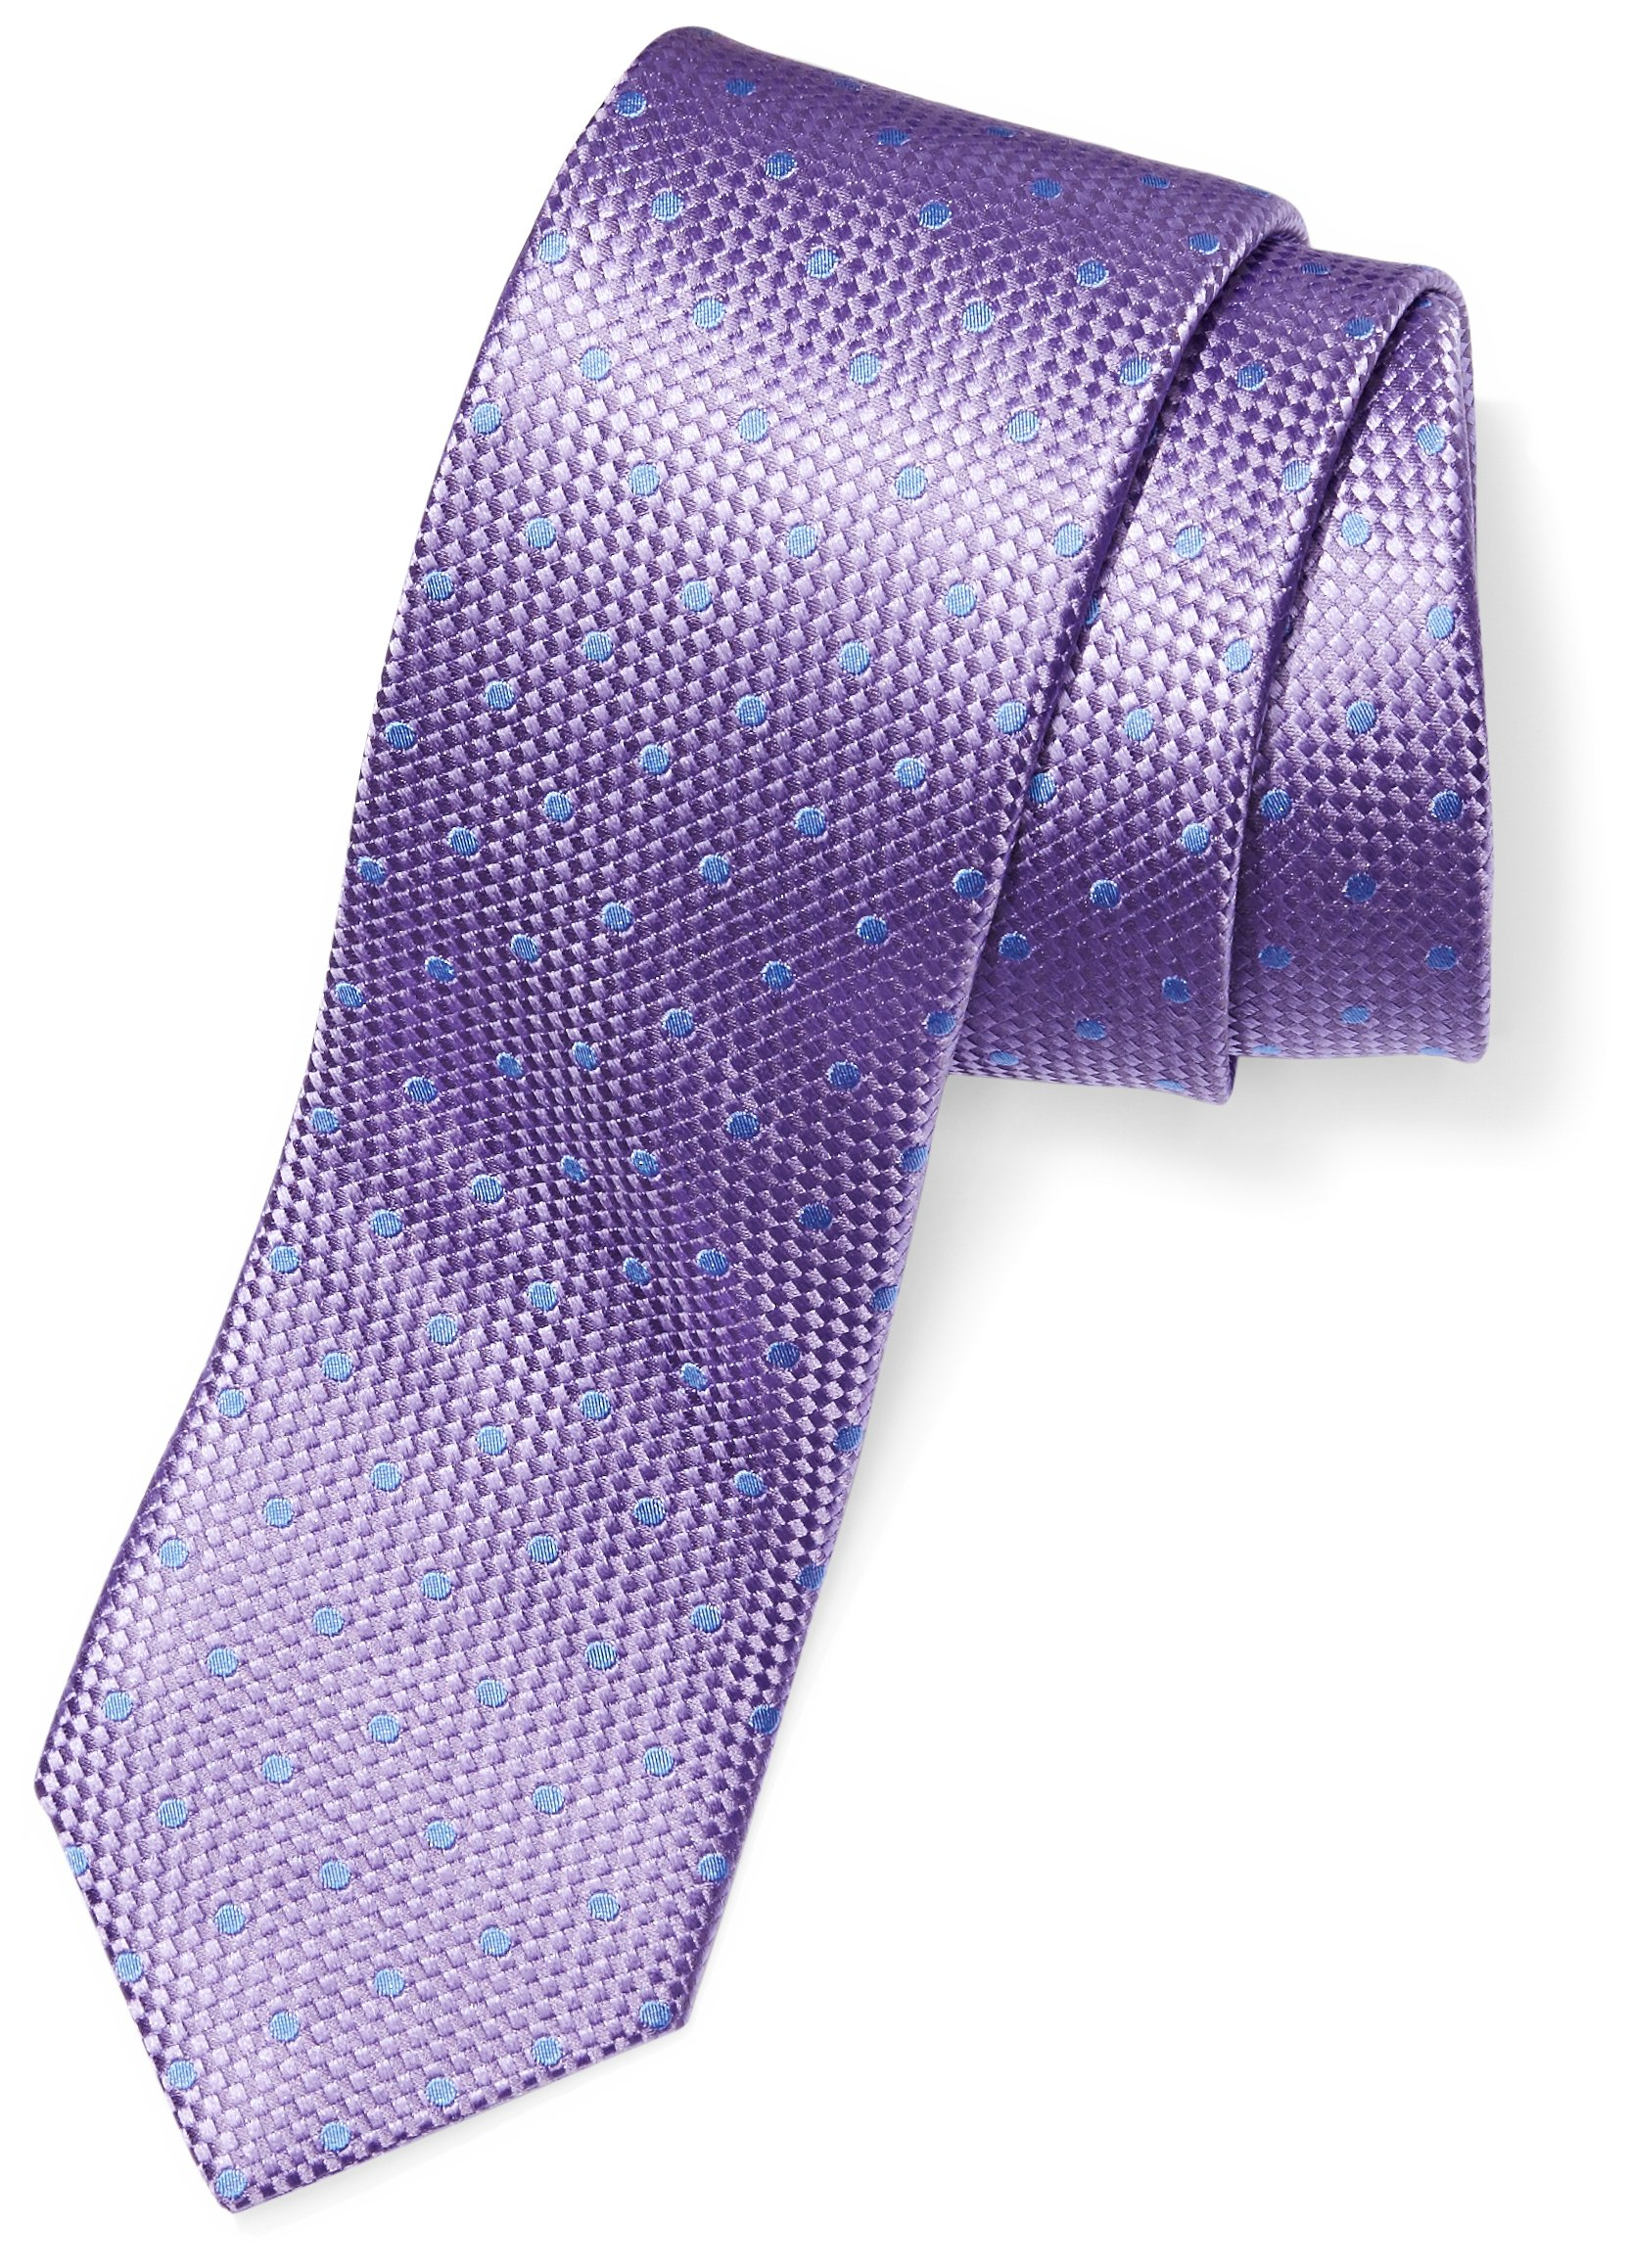 Buttoned Down Men's 100% Silk Tie, Light Purple/light blue dot, Regular